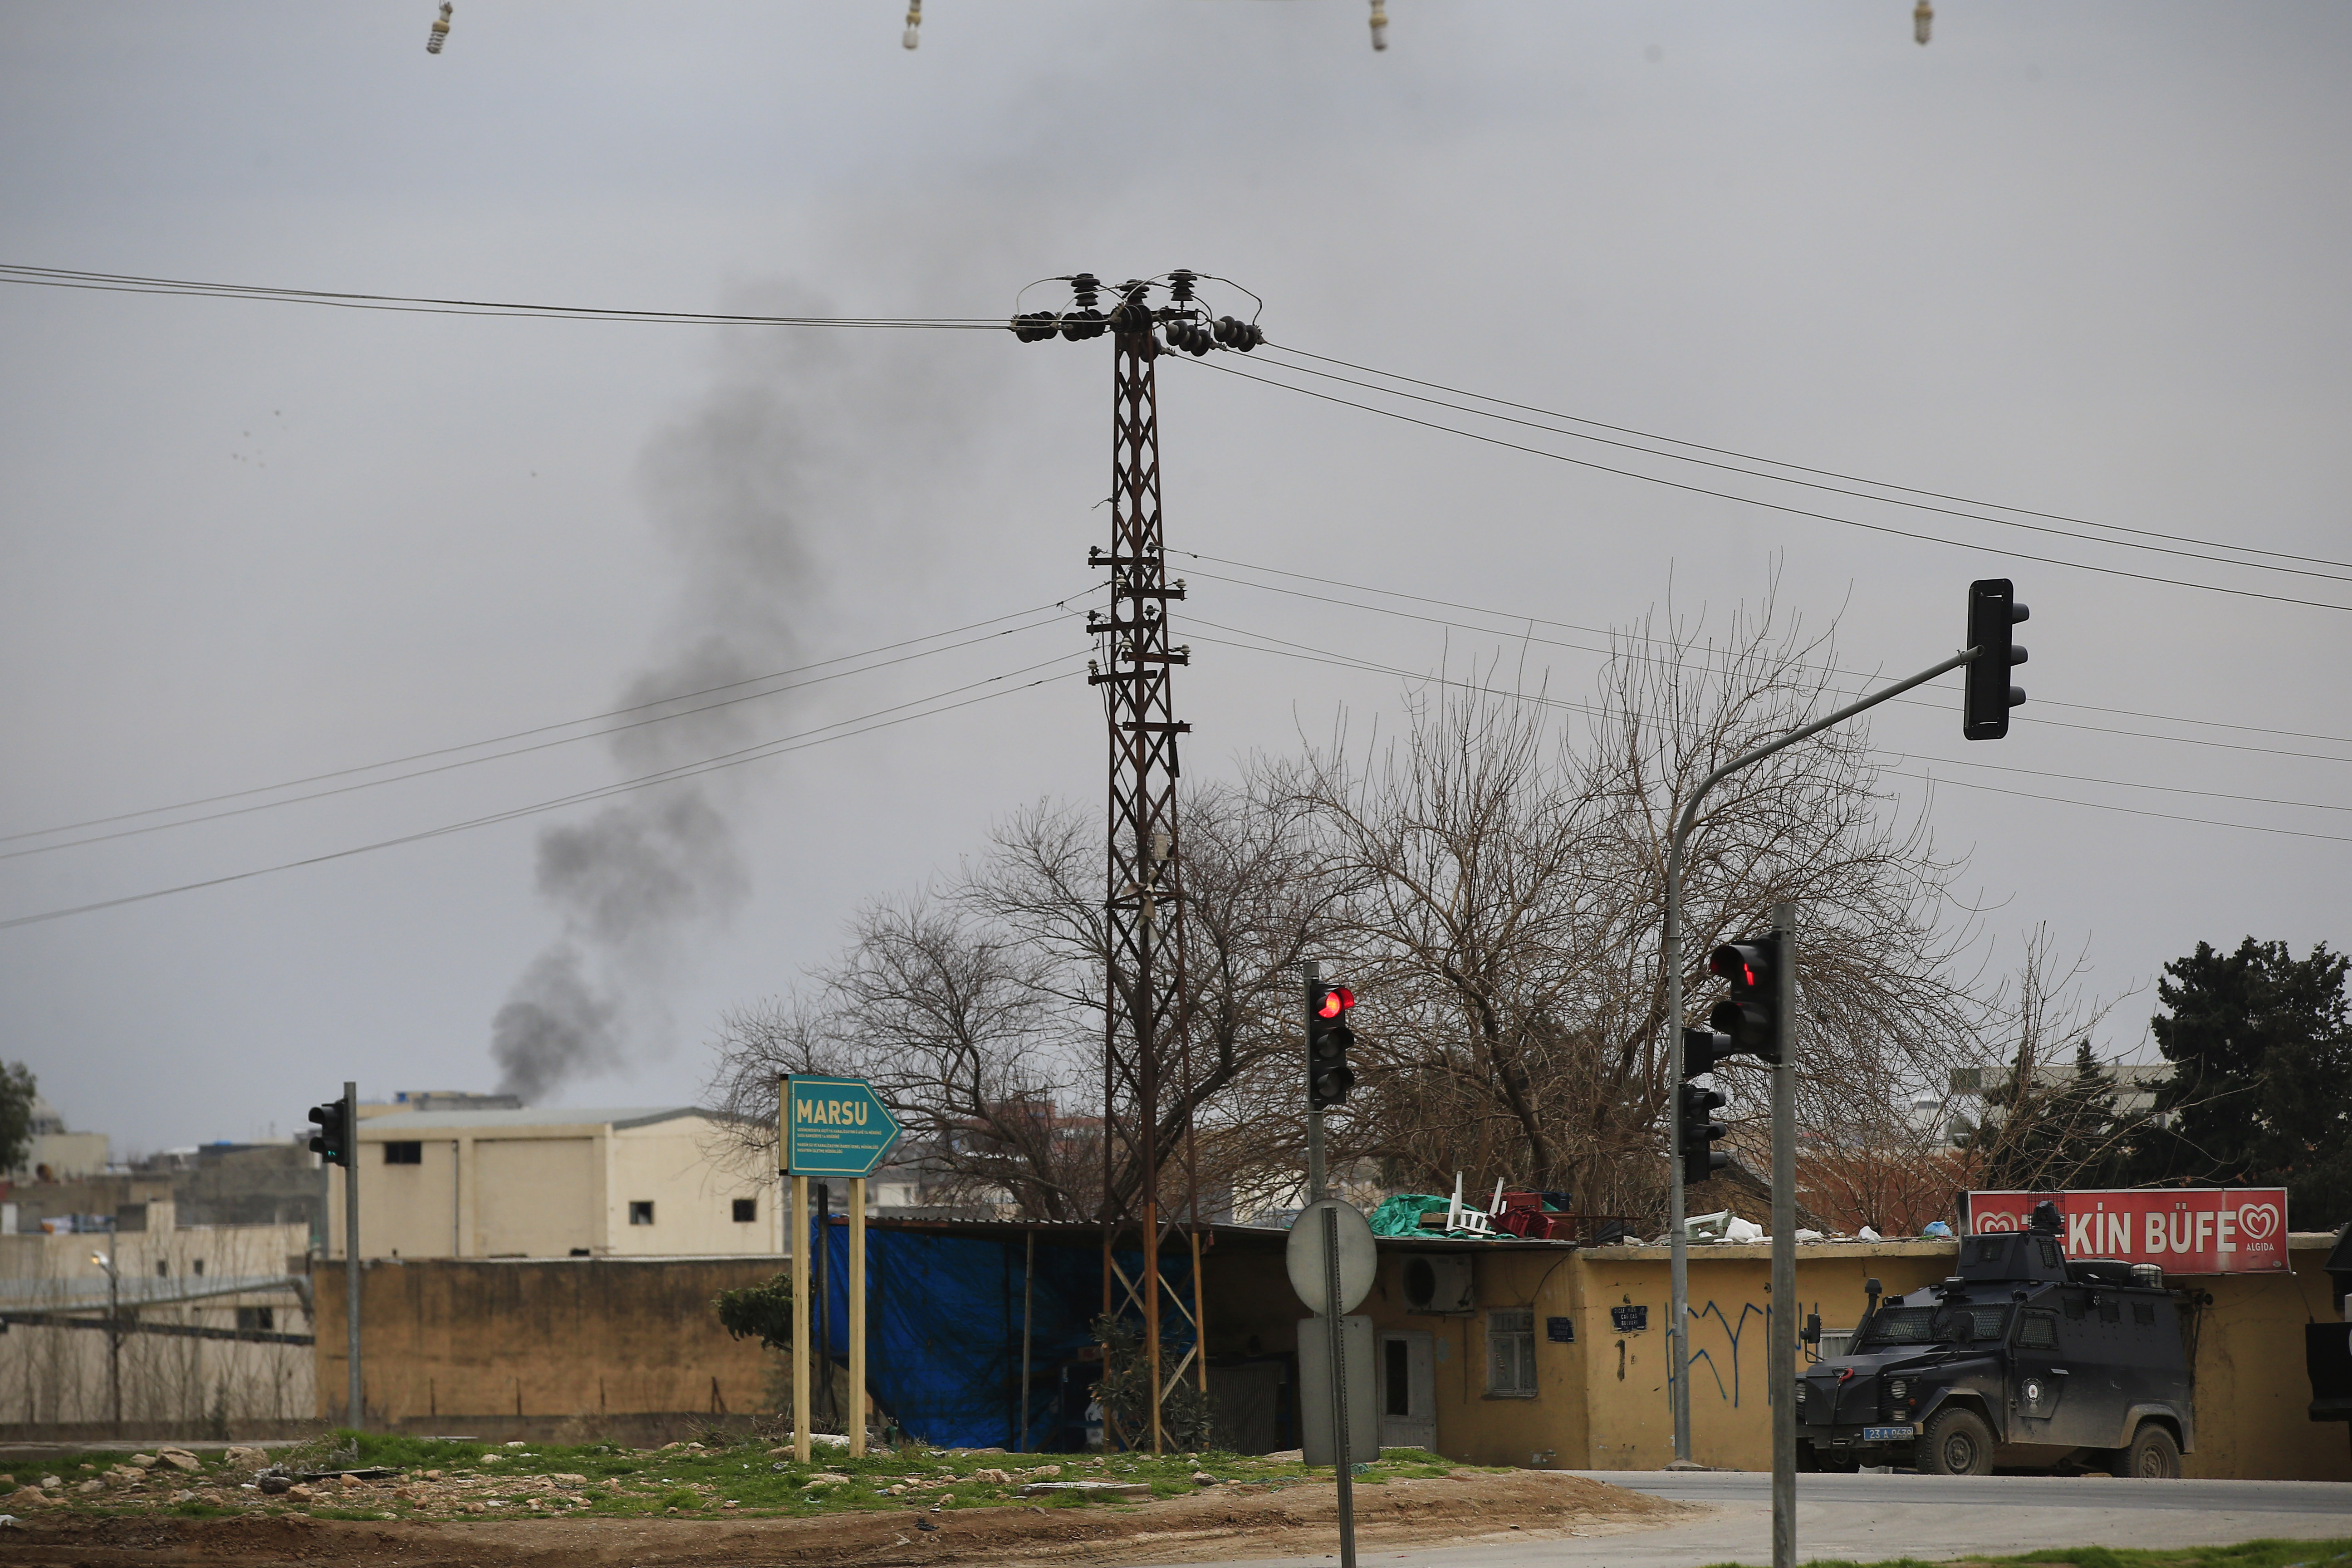 Smoke billows from a fire at the southeastern town of Nusaybin, Turkey, near the border with Syria, where Turkish security forces are battling militants linked to the outlawed Kurdistan Workers, Party or PKK, Sunday, Feb. 14, 2016.